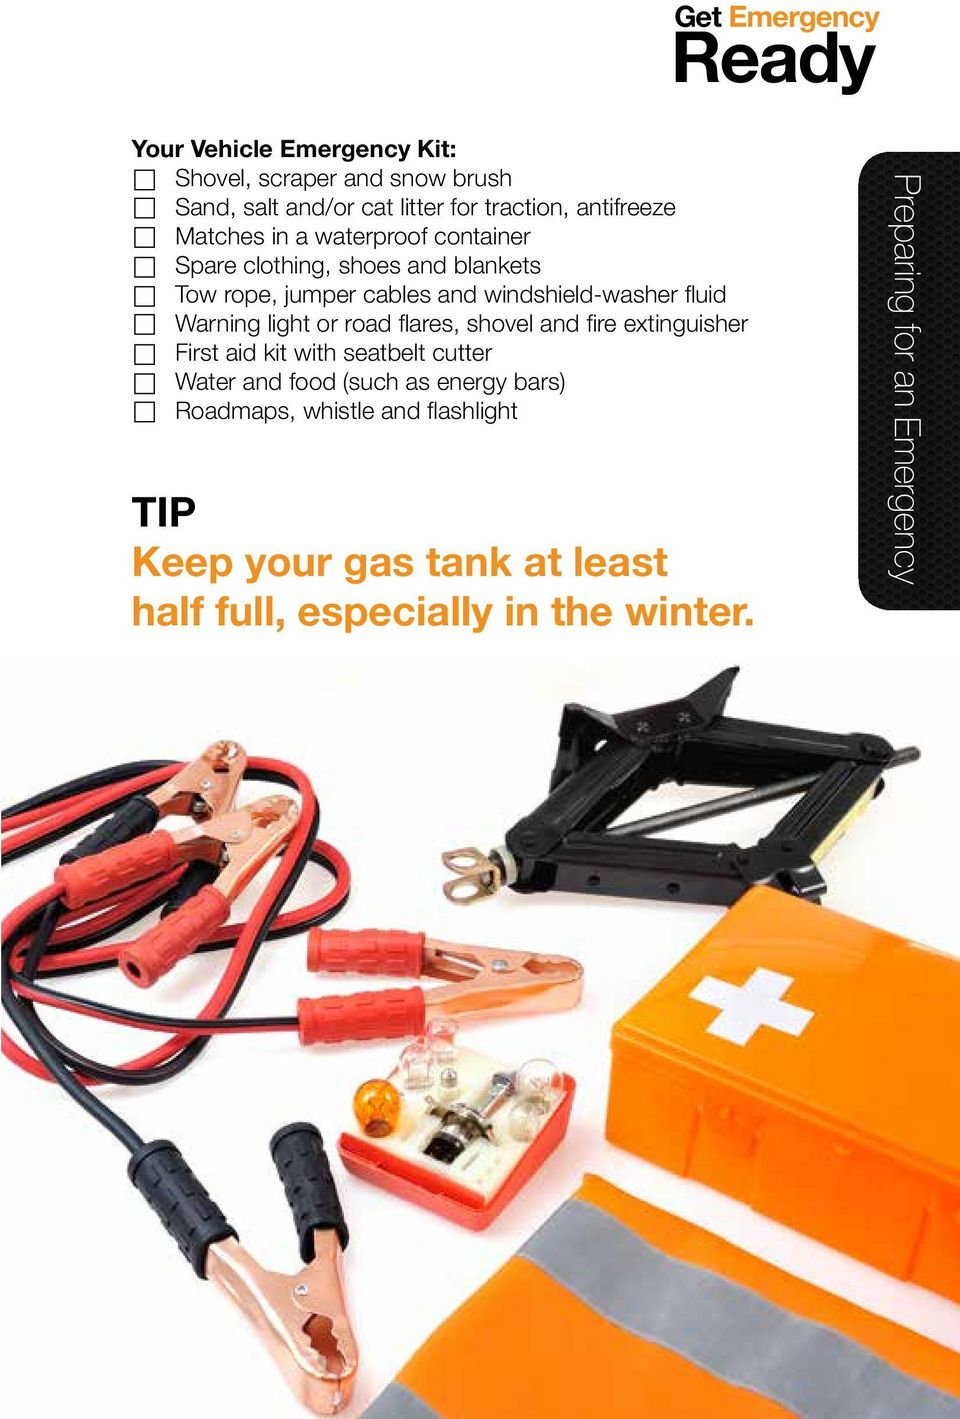 or road flares, shovel and fire extinguisher First aid kit with seatbelt cutter Water and food (such as energy bars)